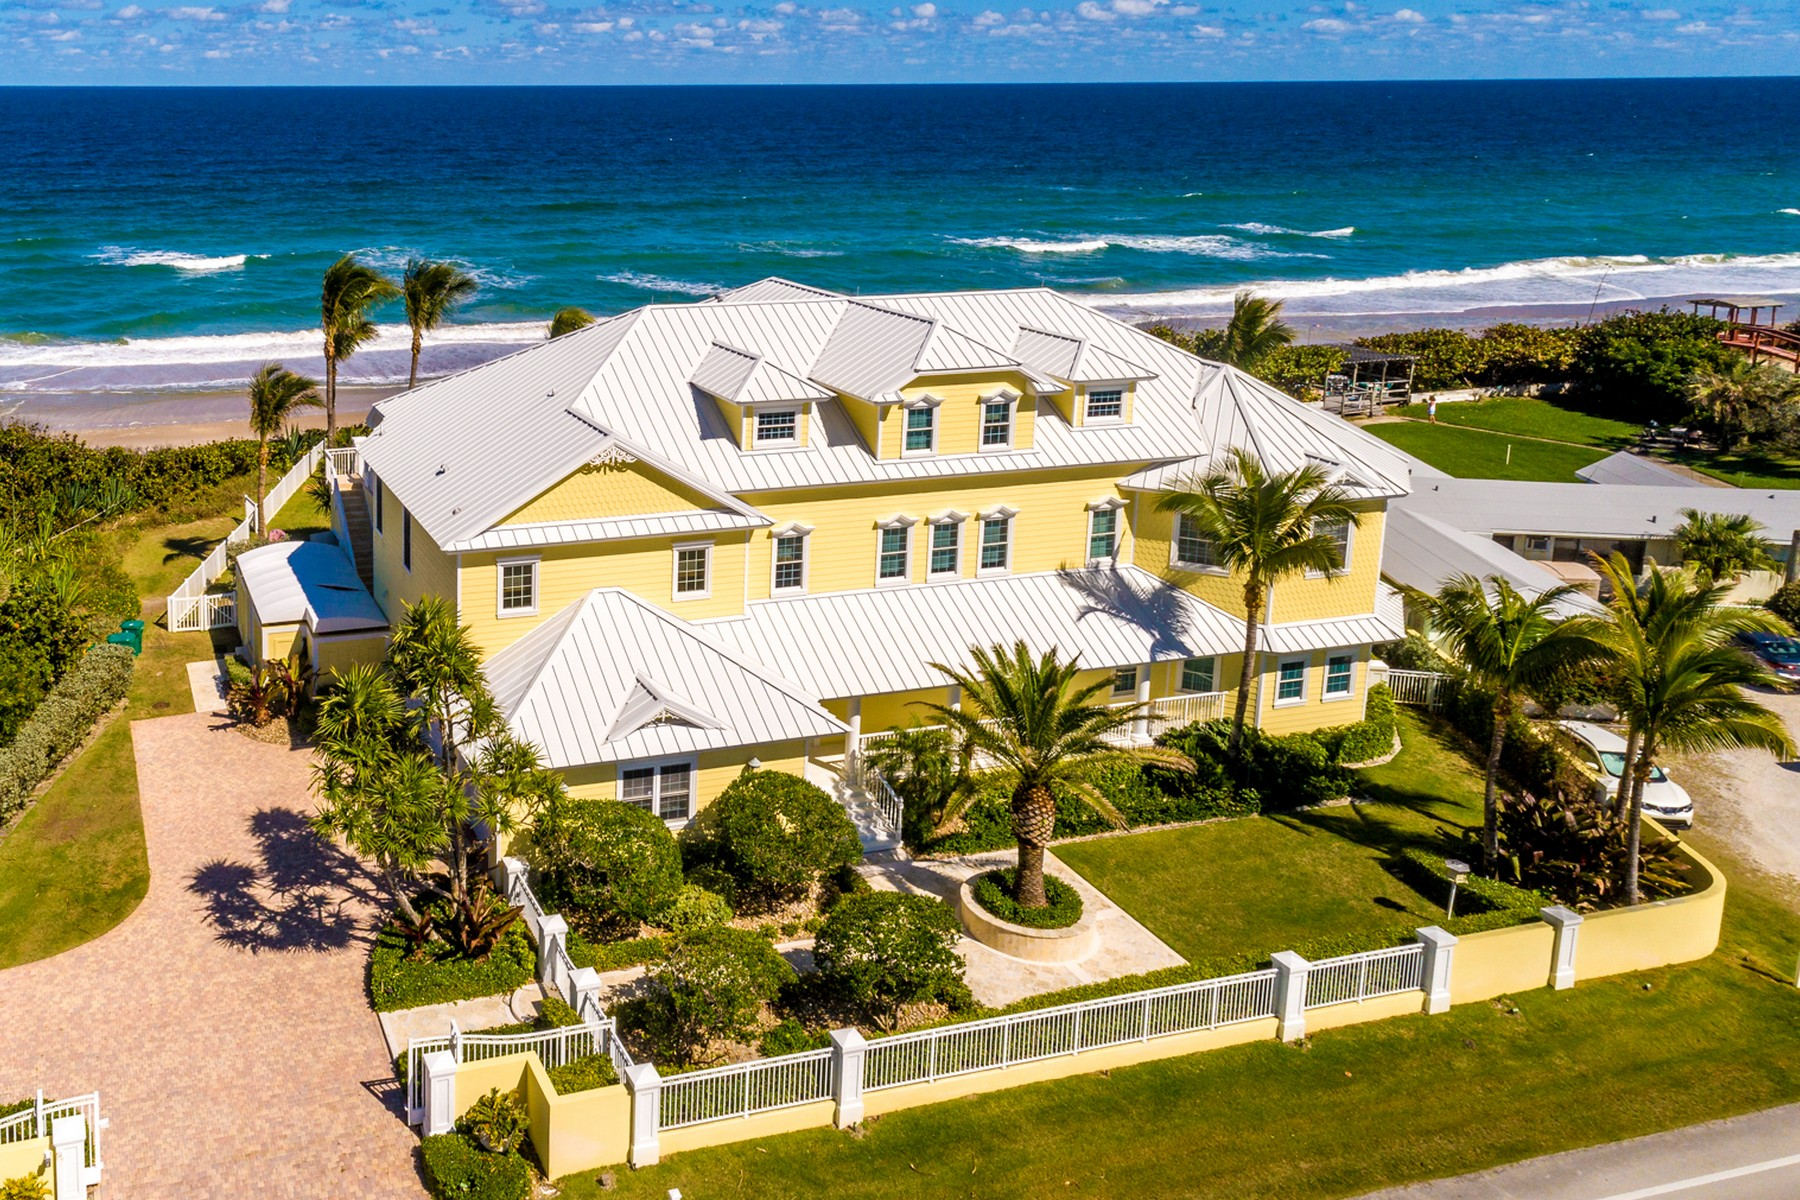 Property voor Verkoop op Gorgeous Tropically Landscaped Home with Endless Ocean Vistas 5045 S Highway A1A Melbourne Beach, Florida 32951 Verenigde Staten